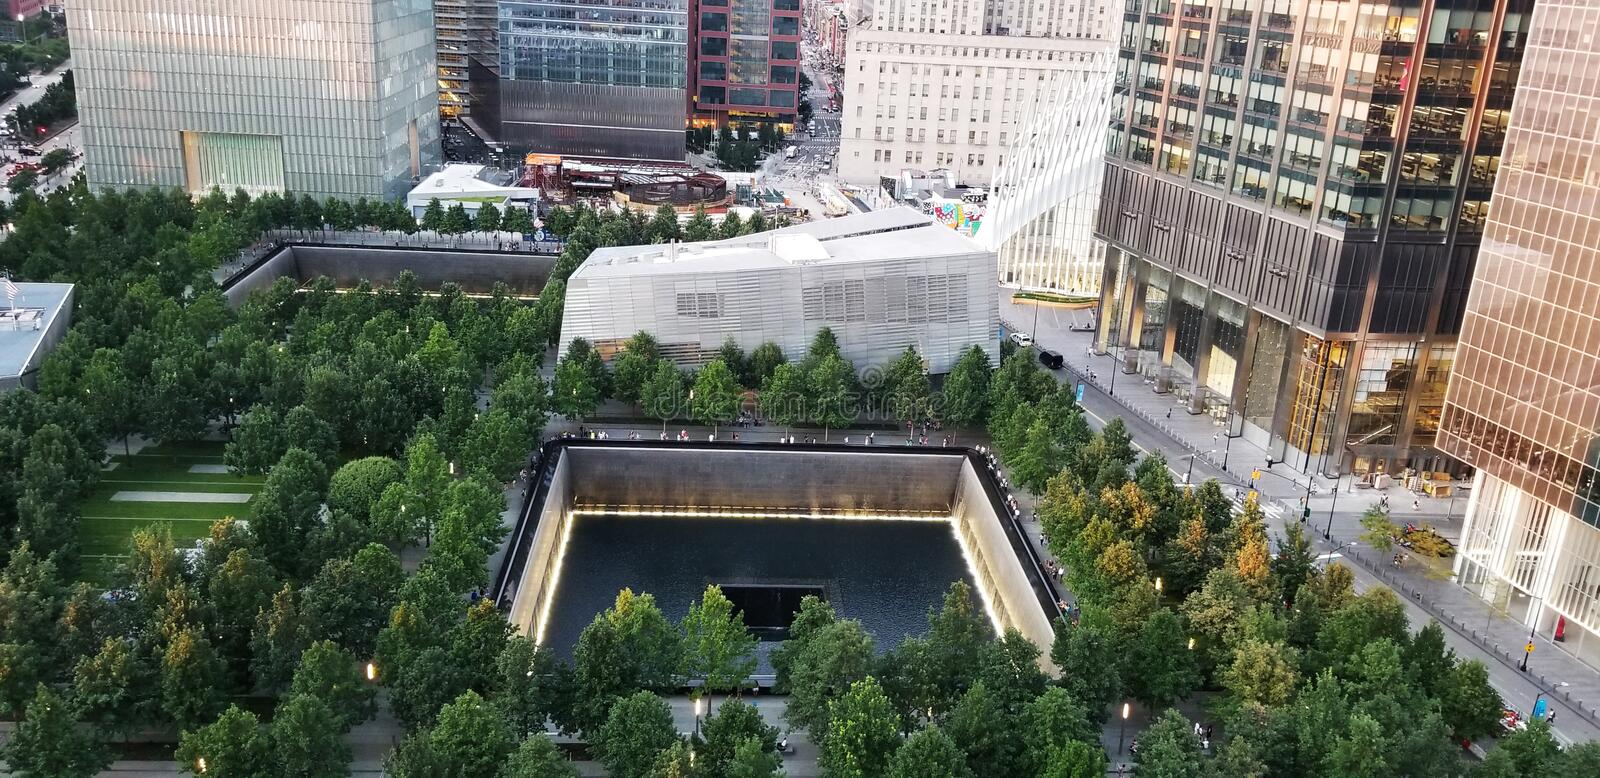 9/11 Memorial Museum 9. August 2019 mit Parkanlage stockbilder